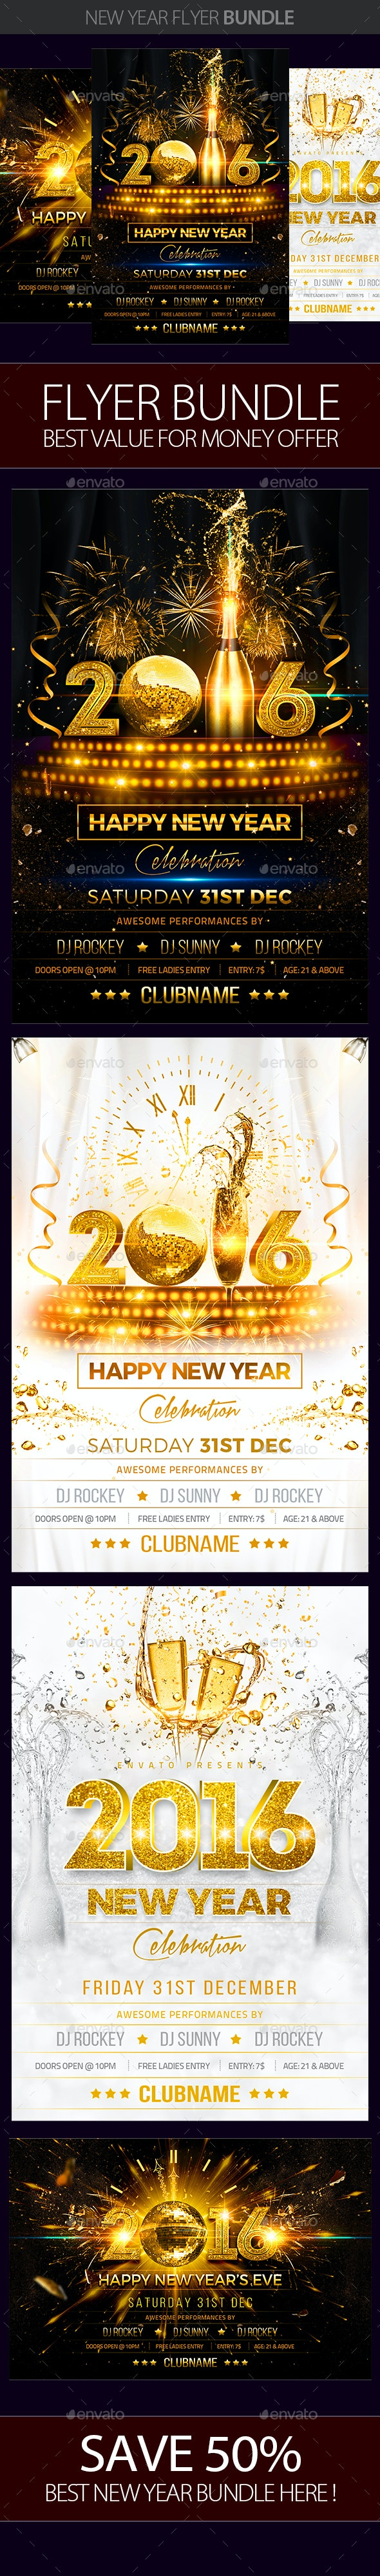 New Year Party Flyer Bundle - Clubs & Parties Events